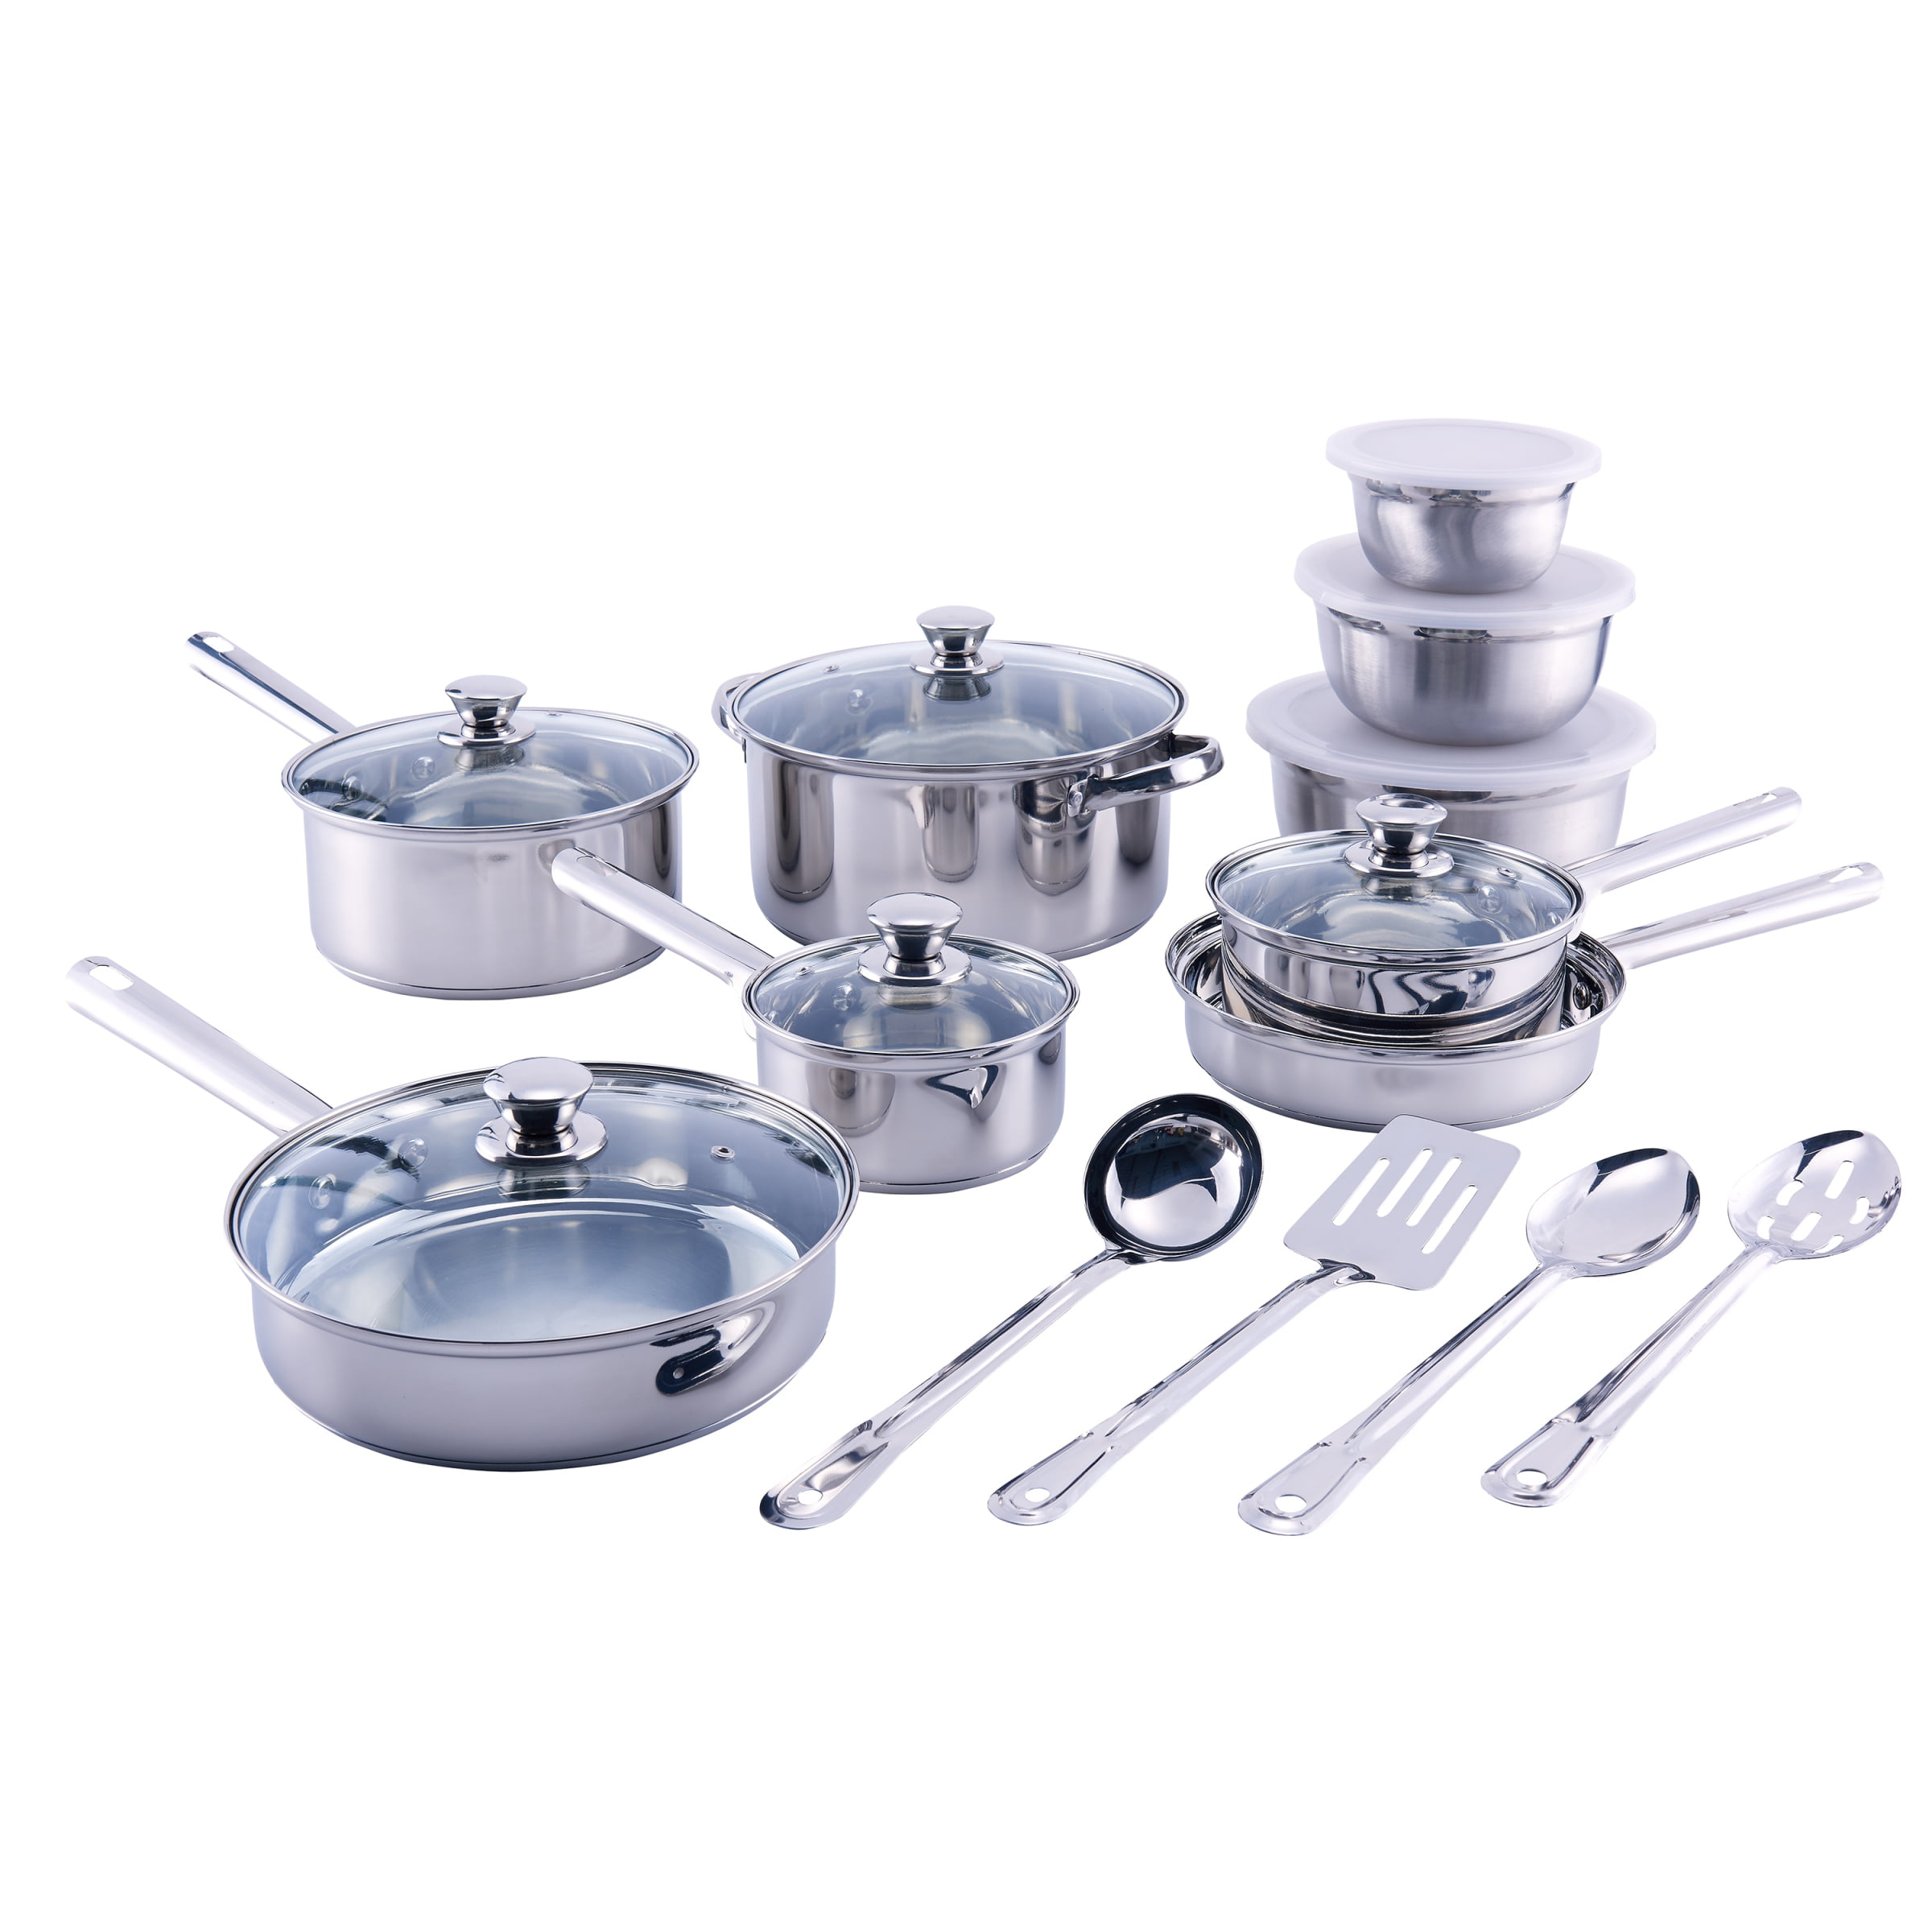 Walmart Housewares: Mainstays Stainless Steel 18 Piece Cookware Set, With